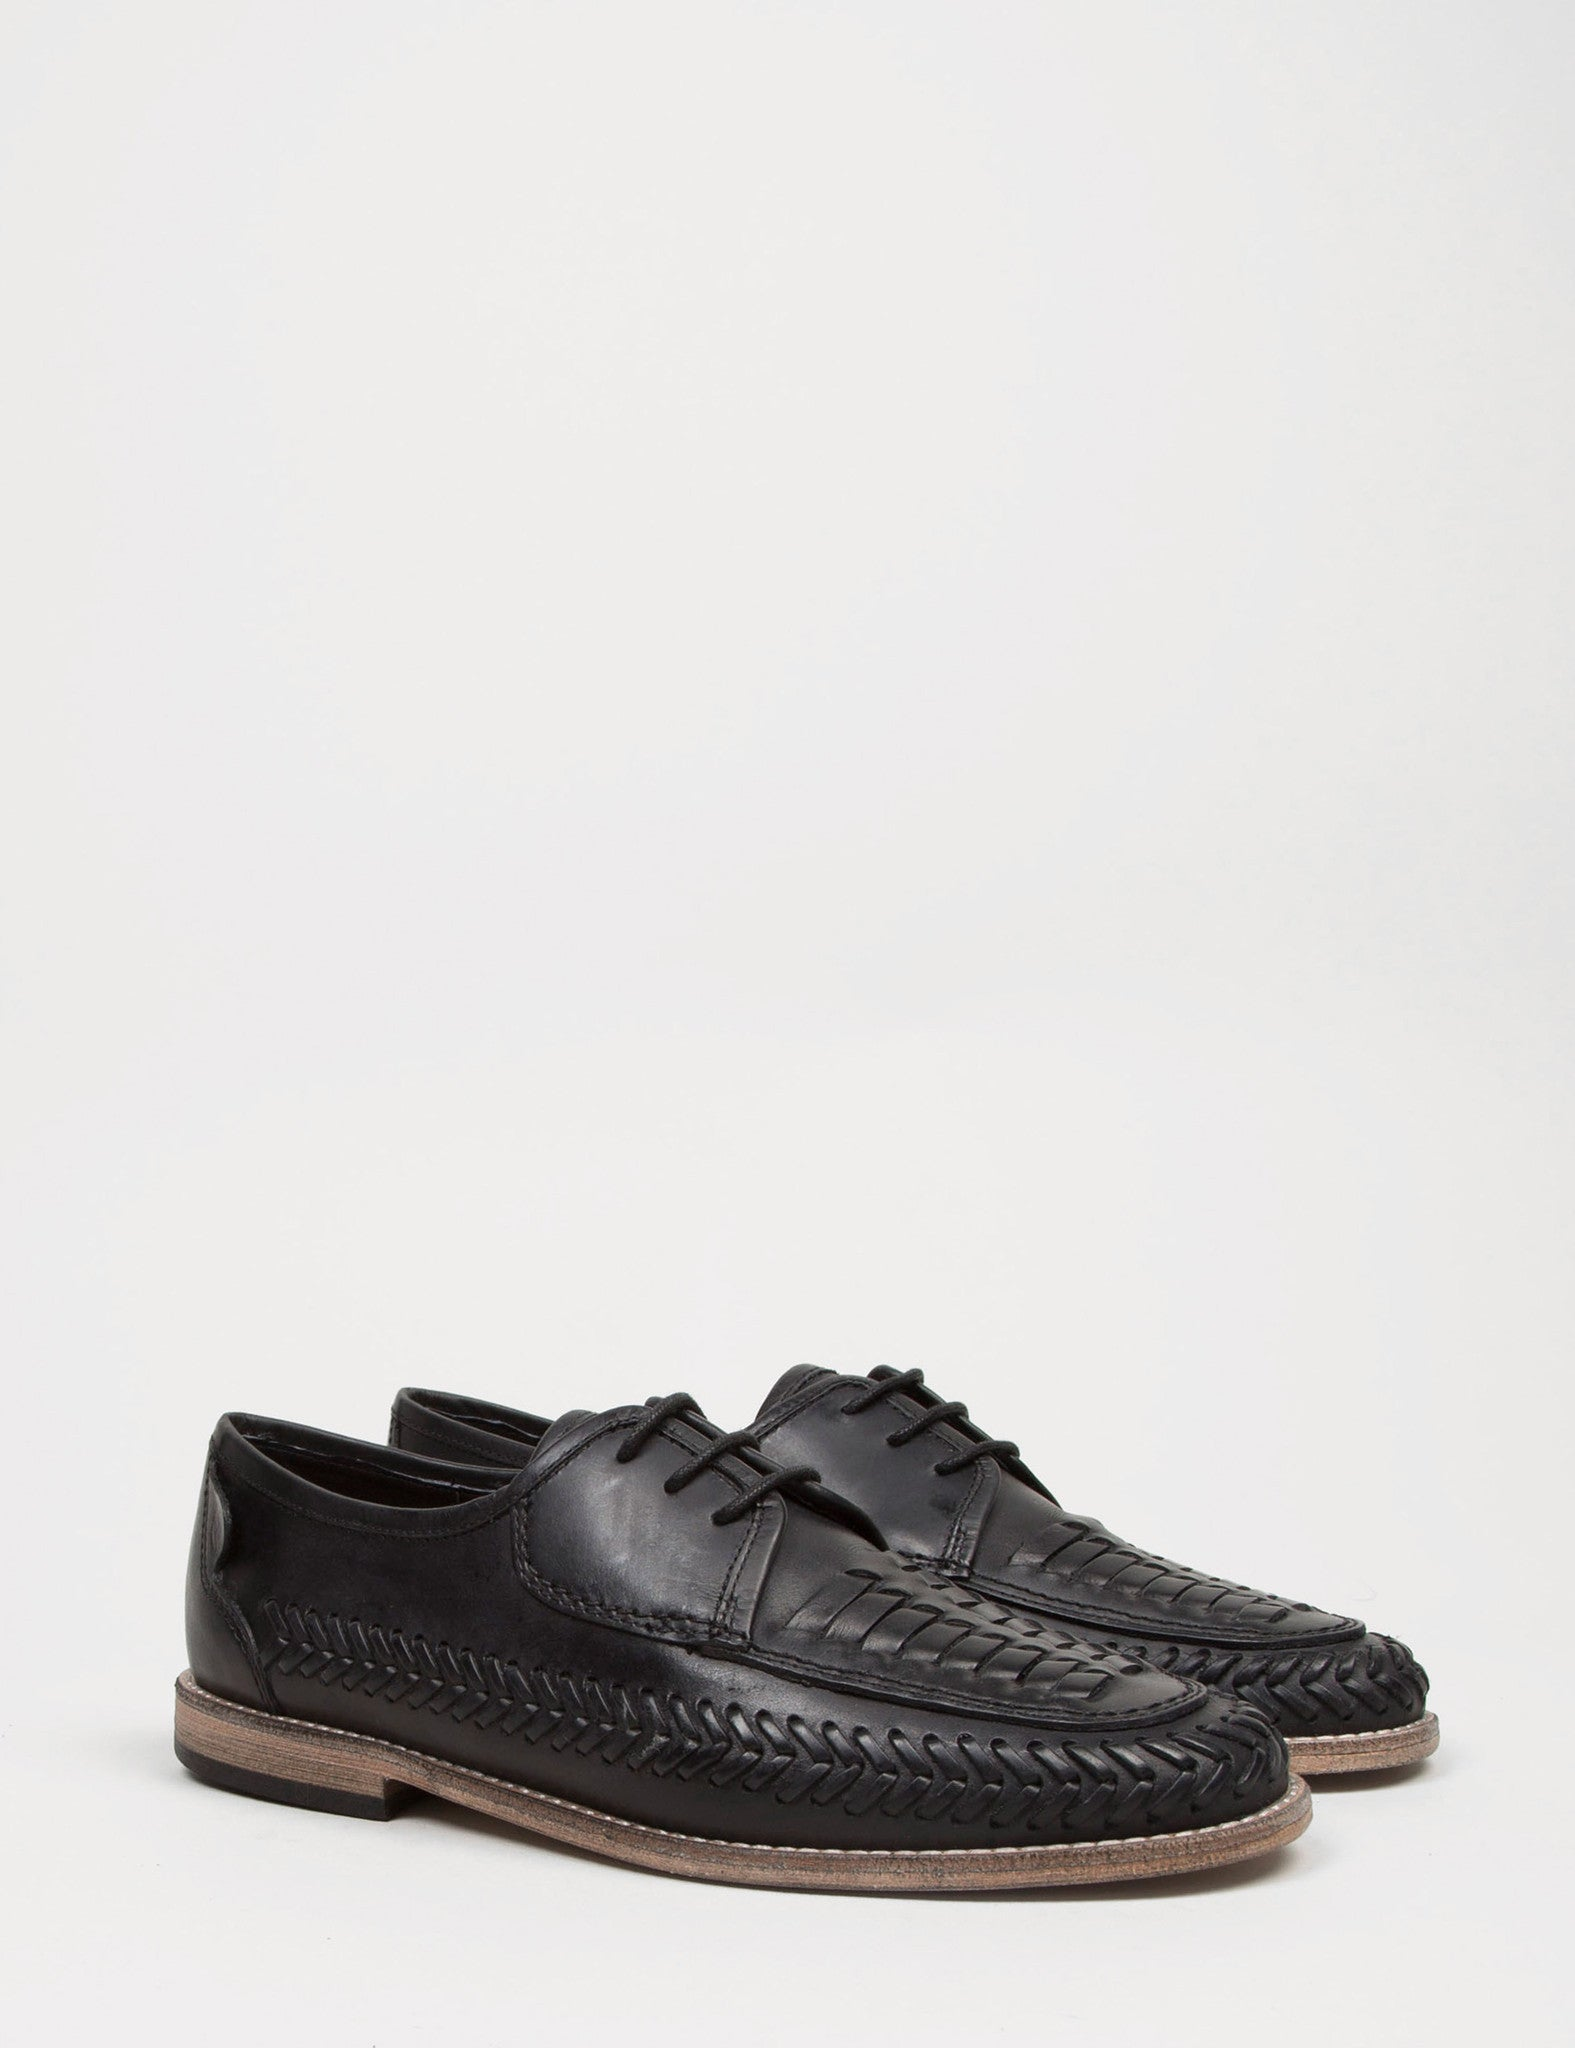 Hudson Anfa Calf Shoes - Black